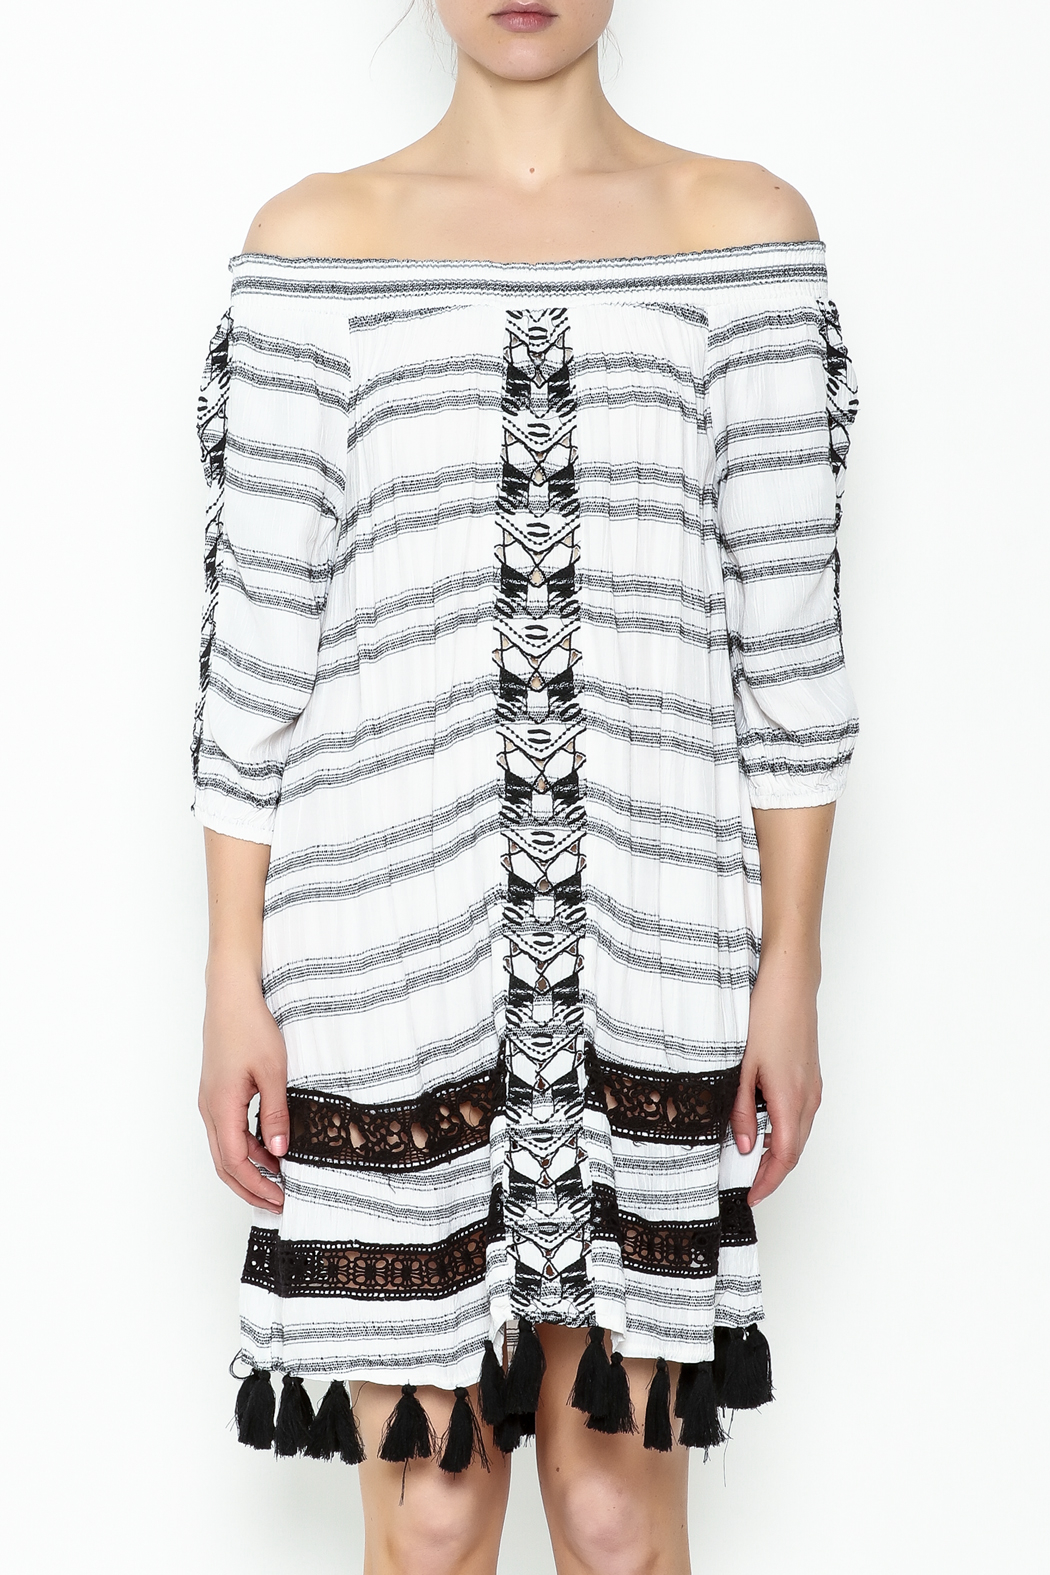 Muche et Muchette Striped Embroidered Dress - Front Full Image